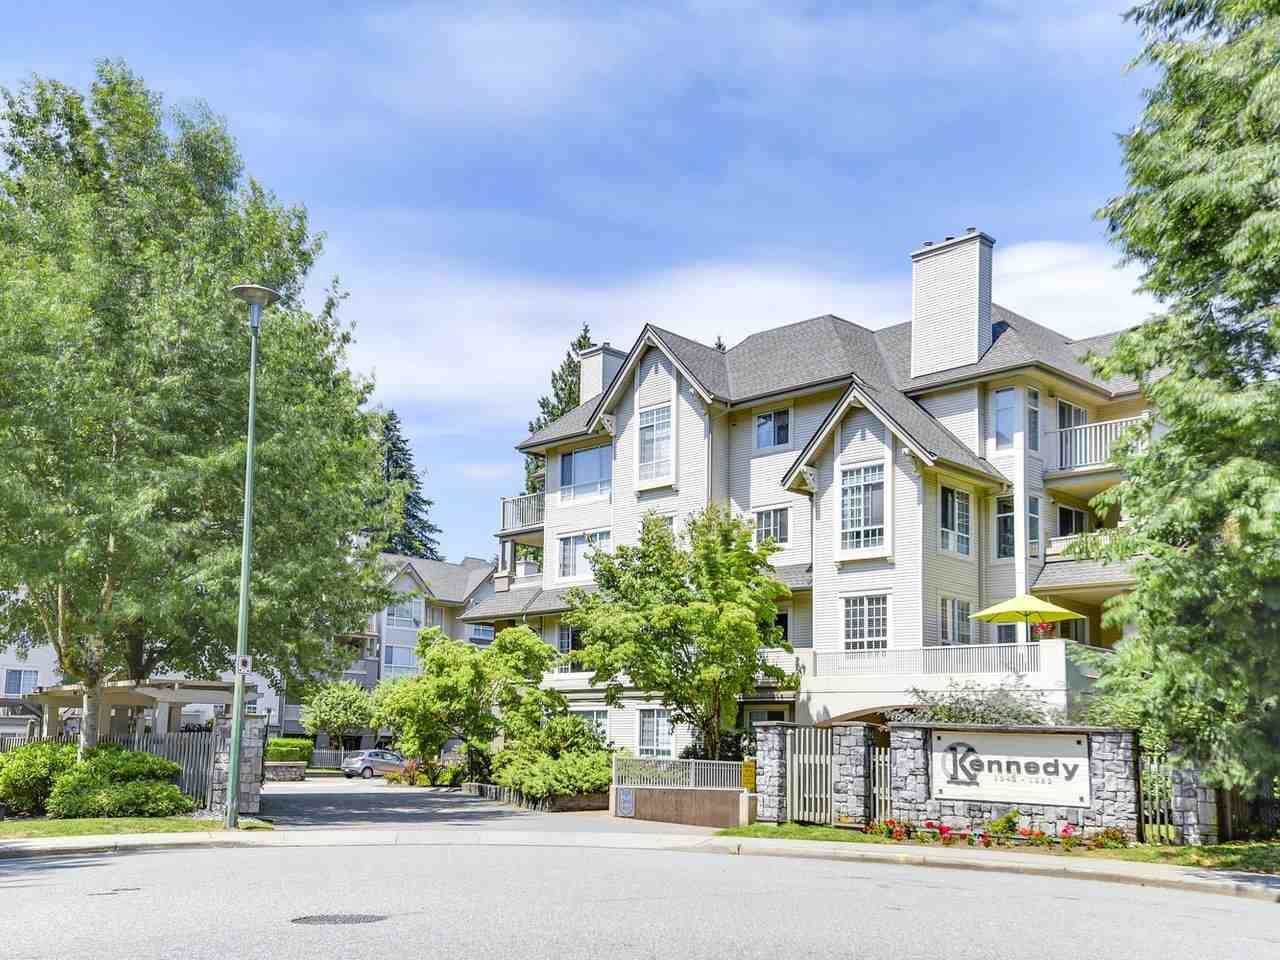 Main Photo: 214 1242 TOWN CENTRE Boulevard in Coquitlam: Canyon Springs Condo for sale : MLS® # R2186409